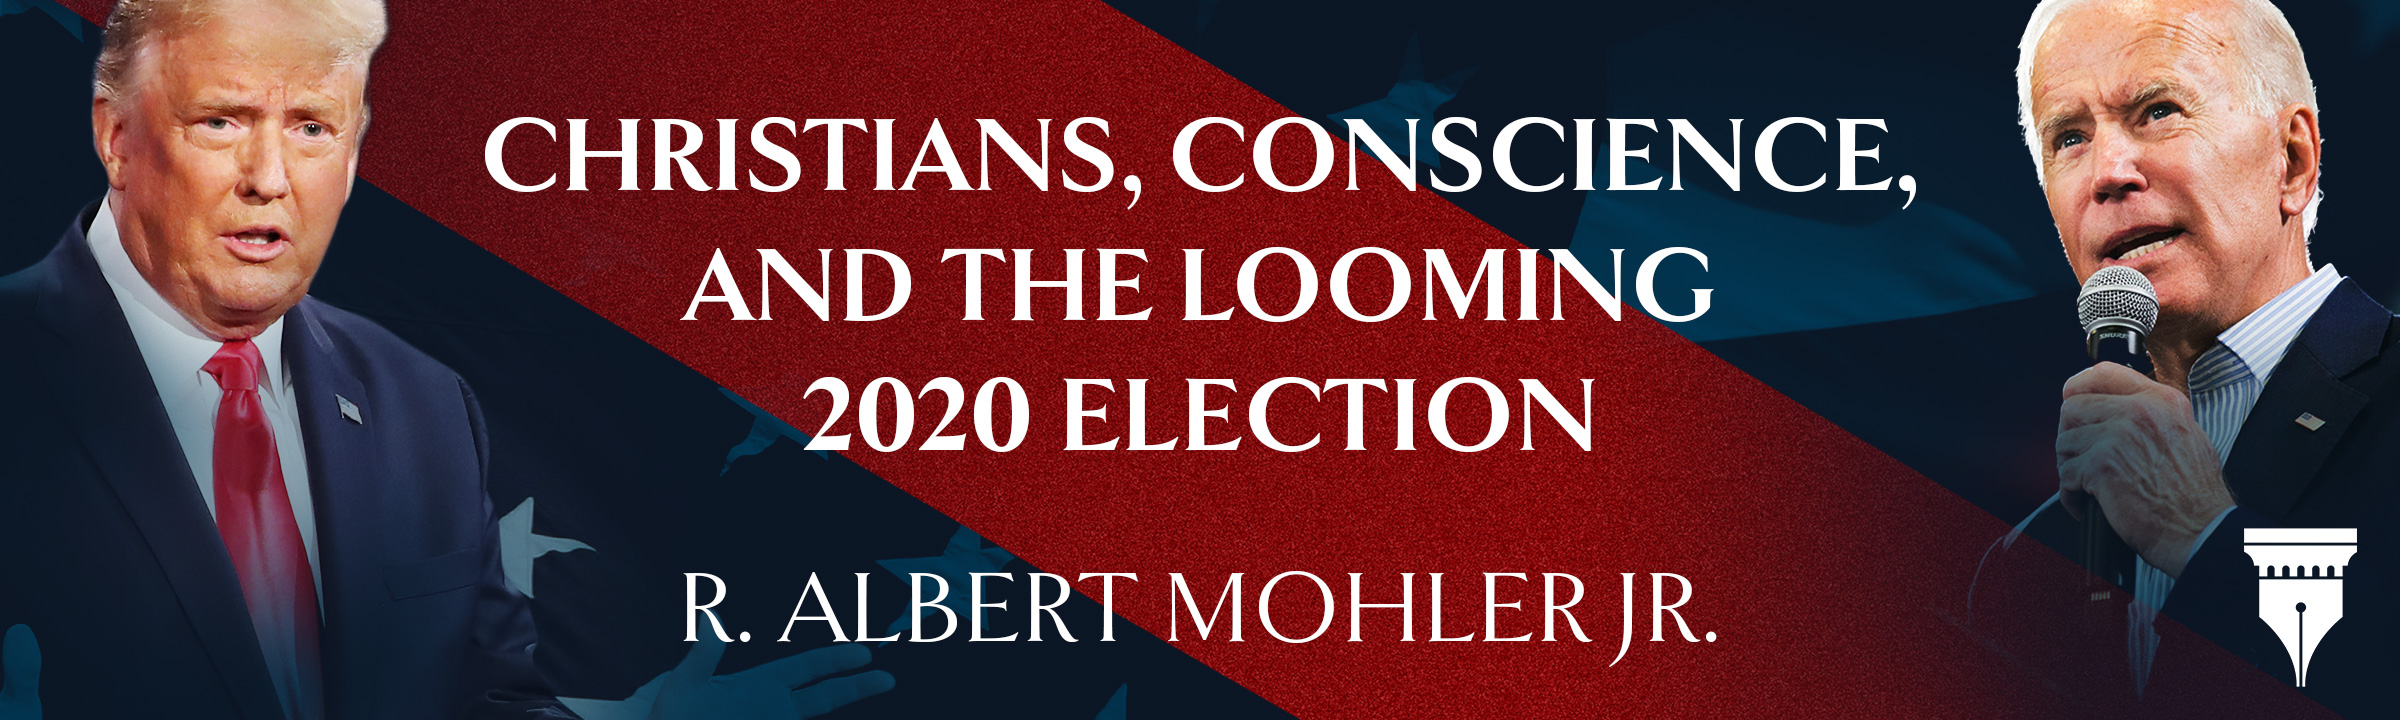 Christians, Conscience, and the Looming 2020 Election